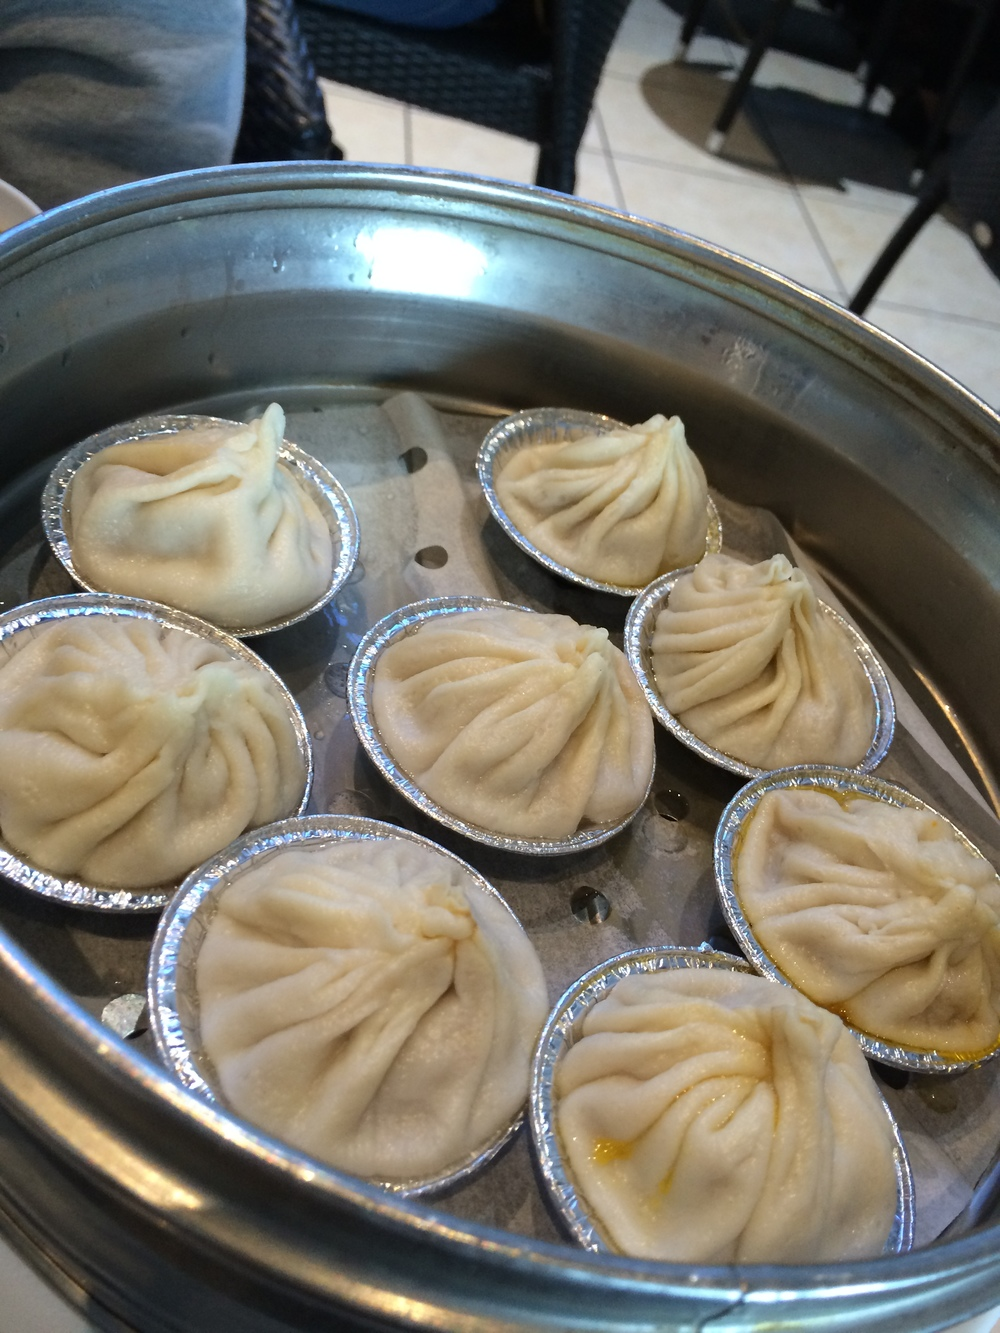 Pork and crab soup dumplings.  Very excellent.